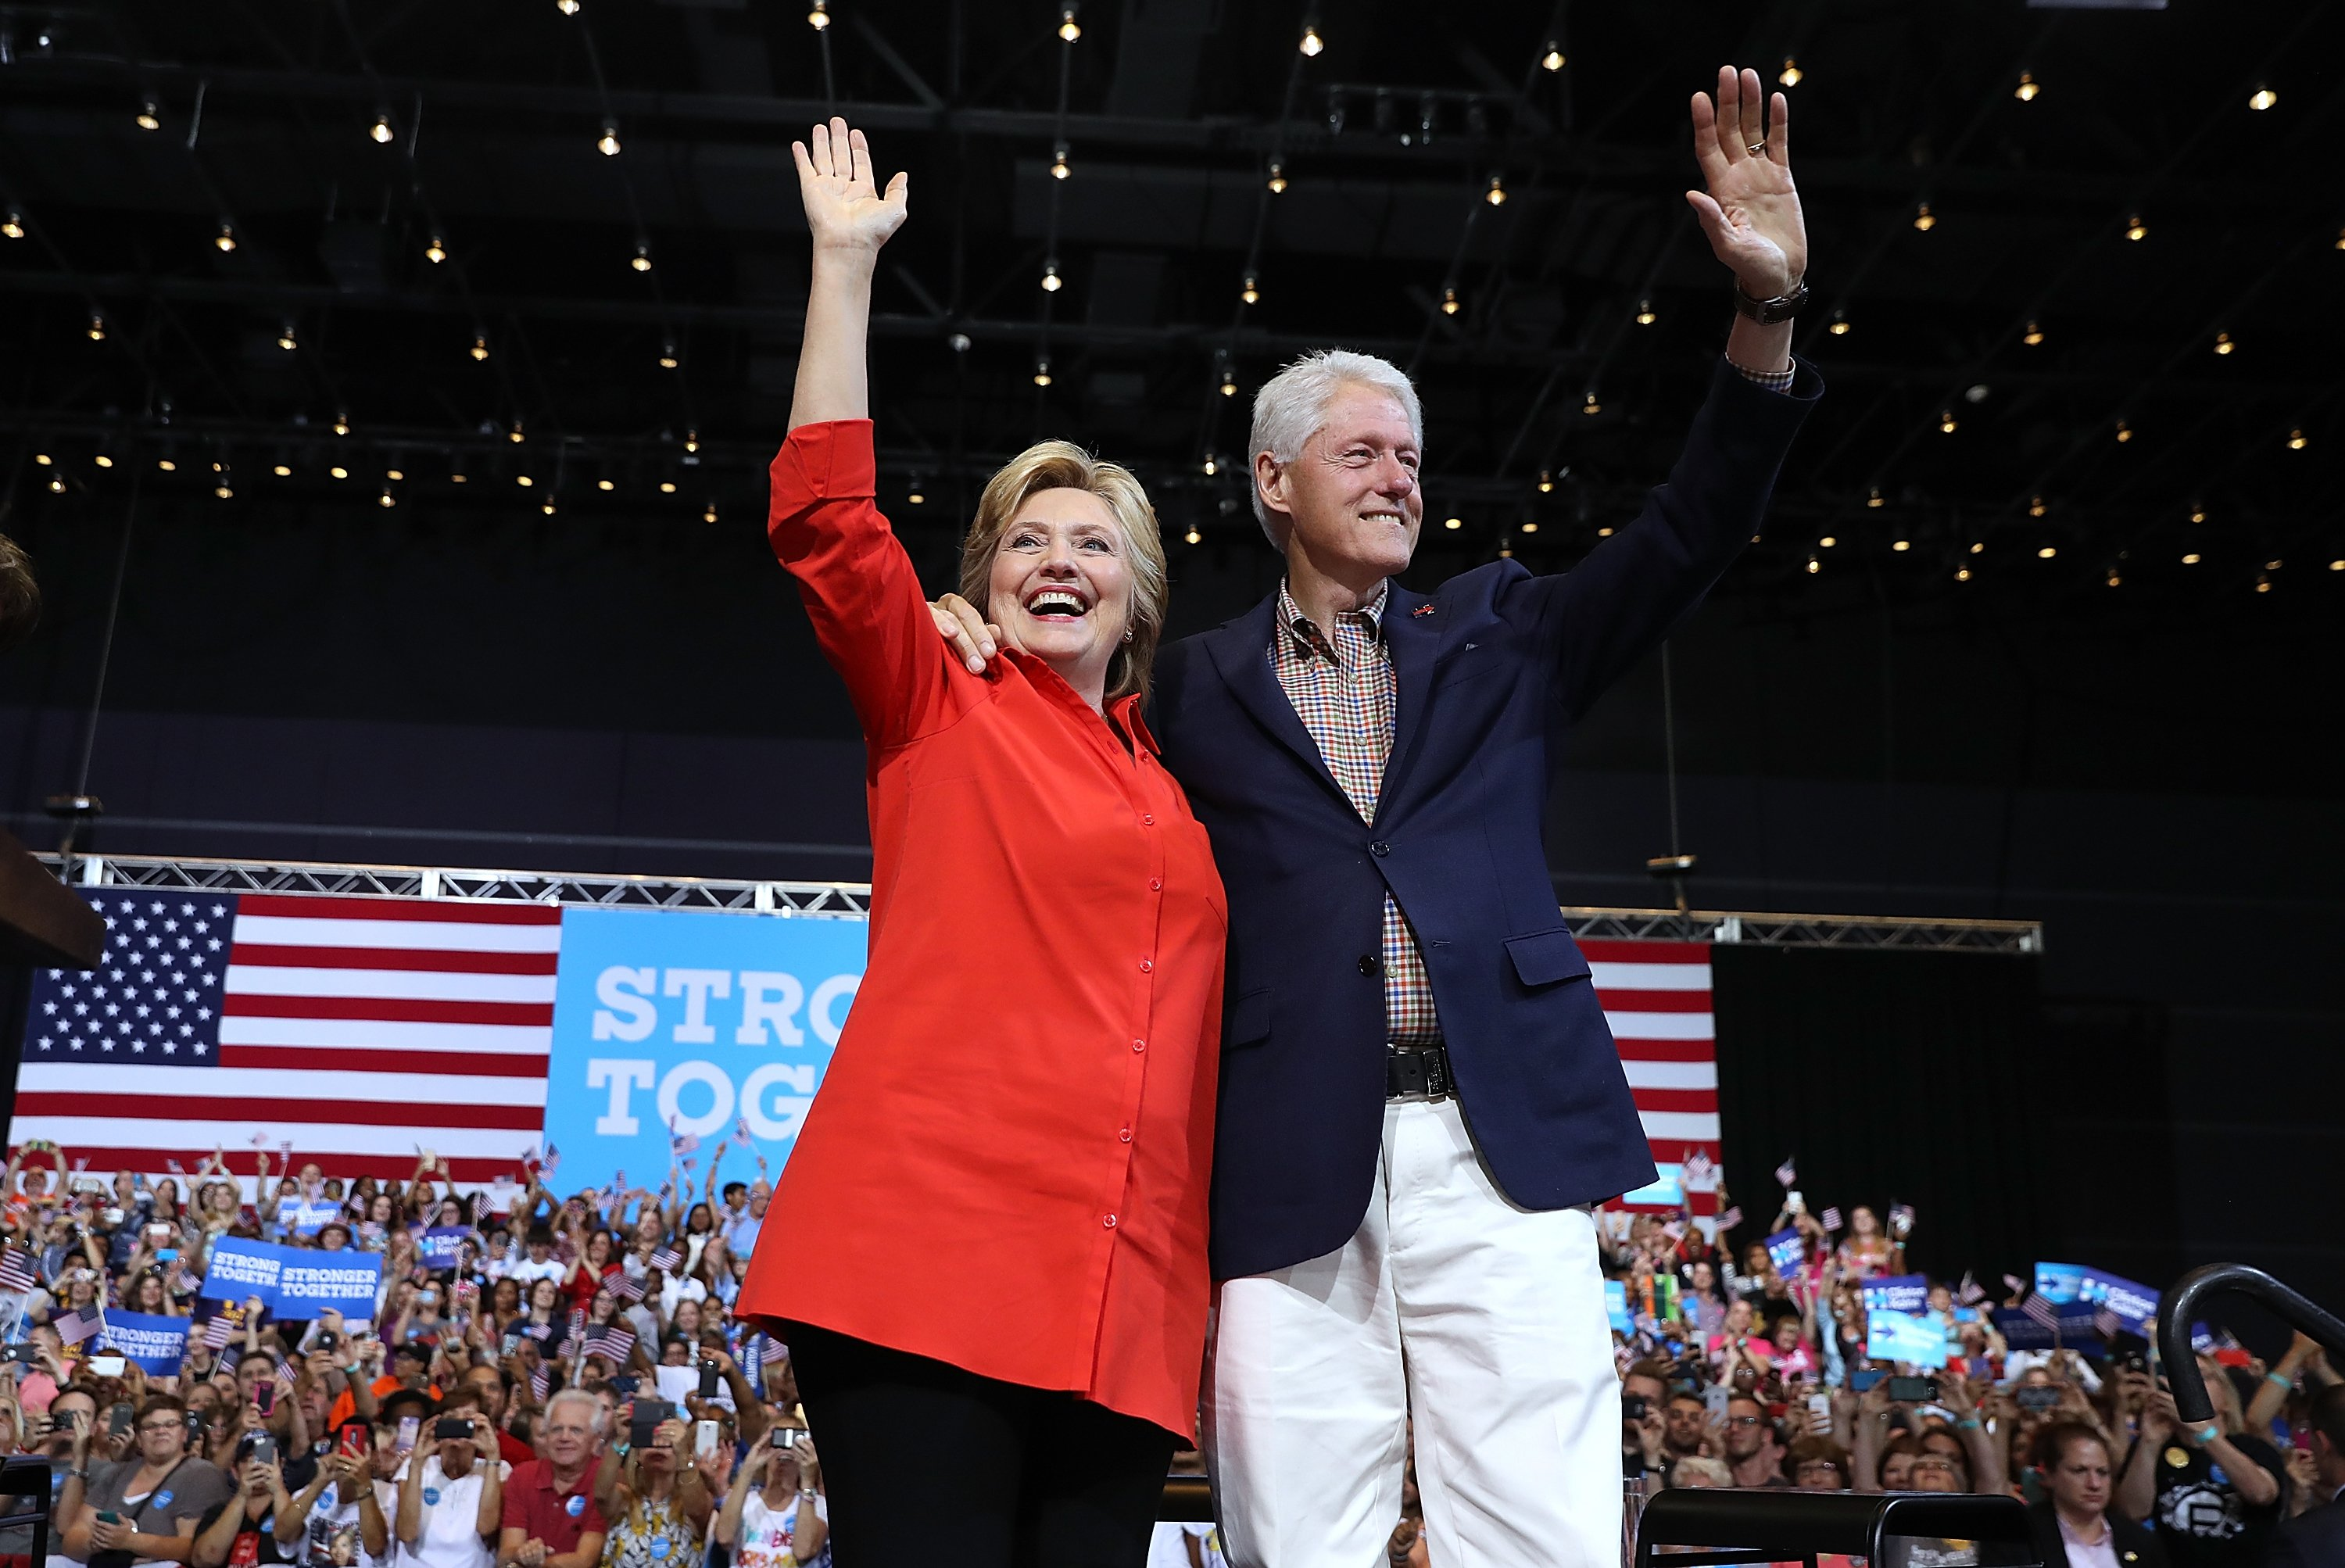 Hillary and Bill Clinton during a campaign rally at the David L. Lawrence Convention Center on July 30, 2016 in Pittsburgh, Pennsylvania | Photo: Getty Images